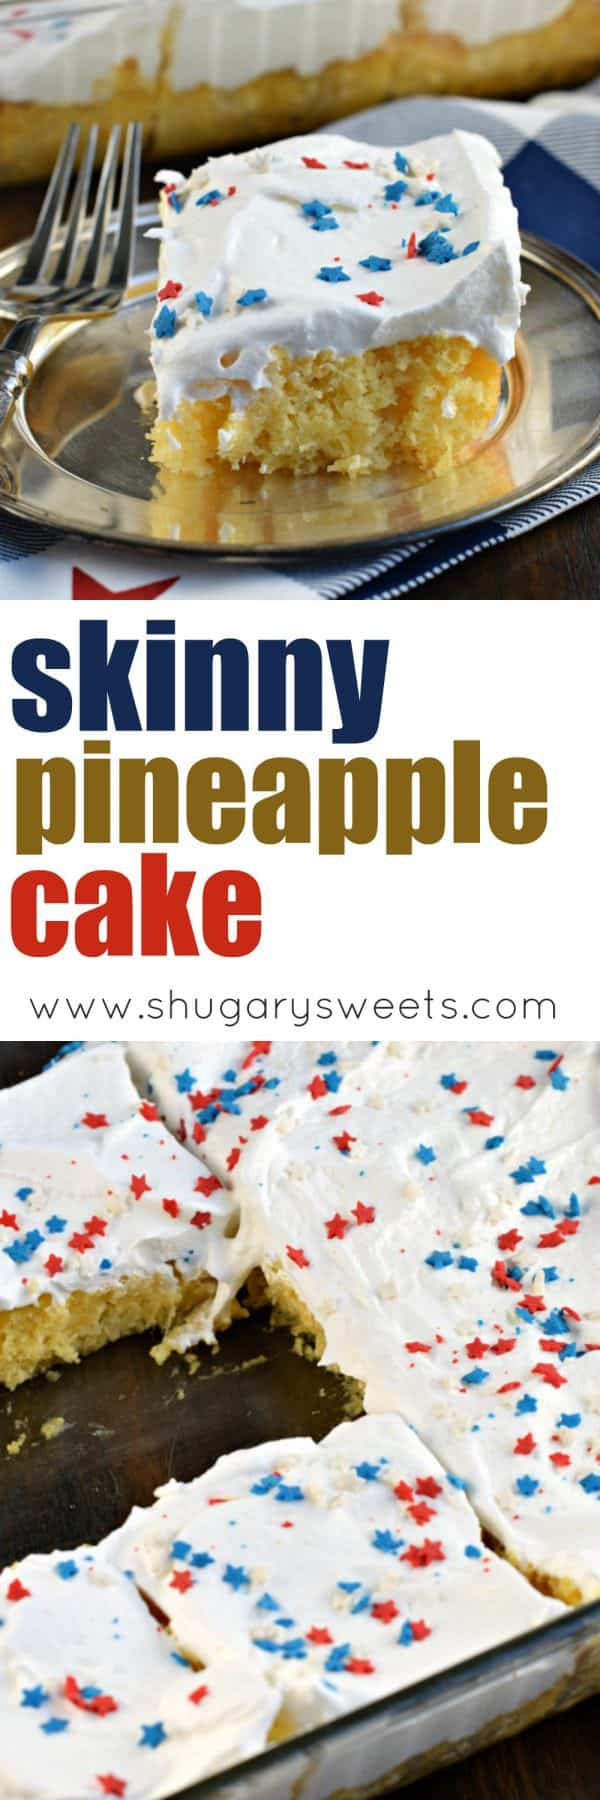 This 3 ingredient SKINNY PINEAPPLE CAKE is the perfect treat for spring and summer! Moist and dense and GUILT FREE.